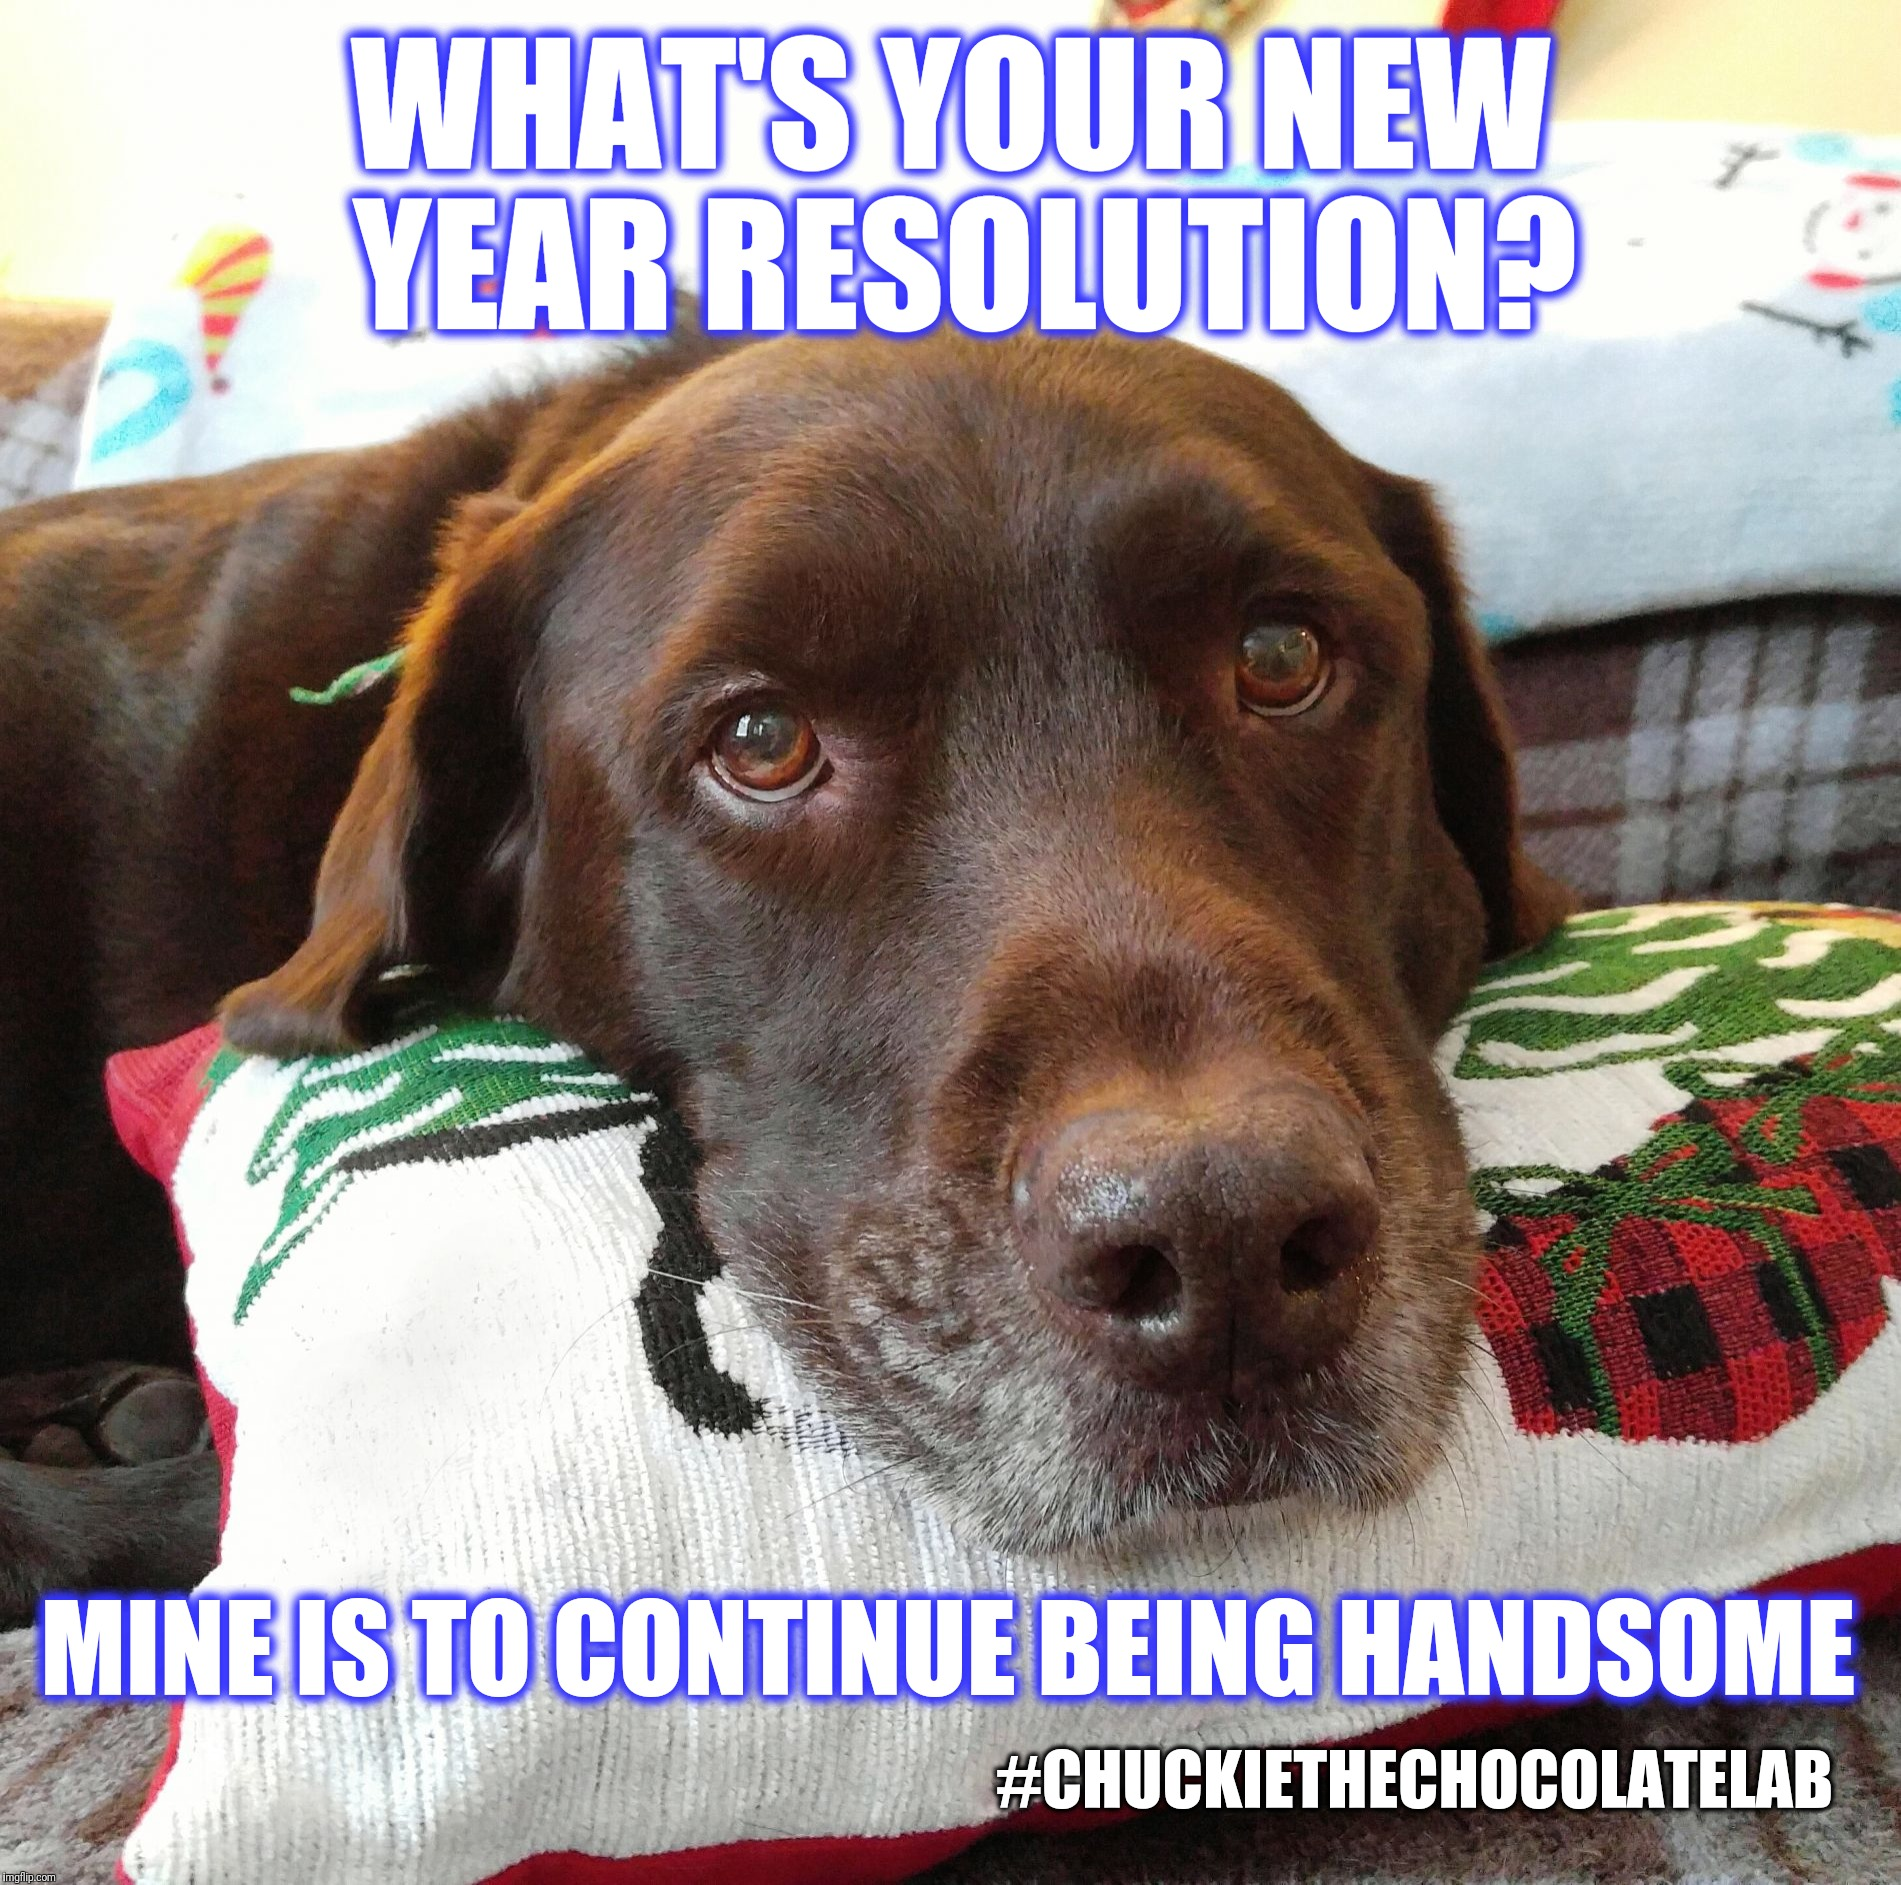 New Year Resolution  | WHAT'S YOUR NEW YEAR RESOLUTION? #CHUCKIETHECHOCOLATELAB MINE IS TO CONTINUE BEING HANDSOME | image tagged in chuckie the chocolate lab teamchuckie,happy new year,resolutions,memes,dogs,funny | made w/ Imgflip meme maker